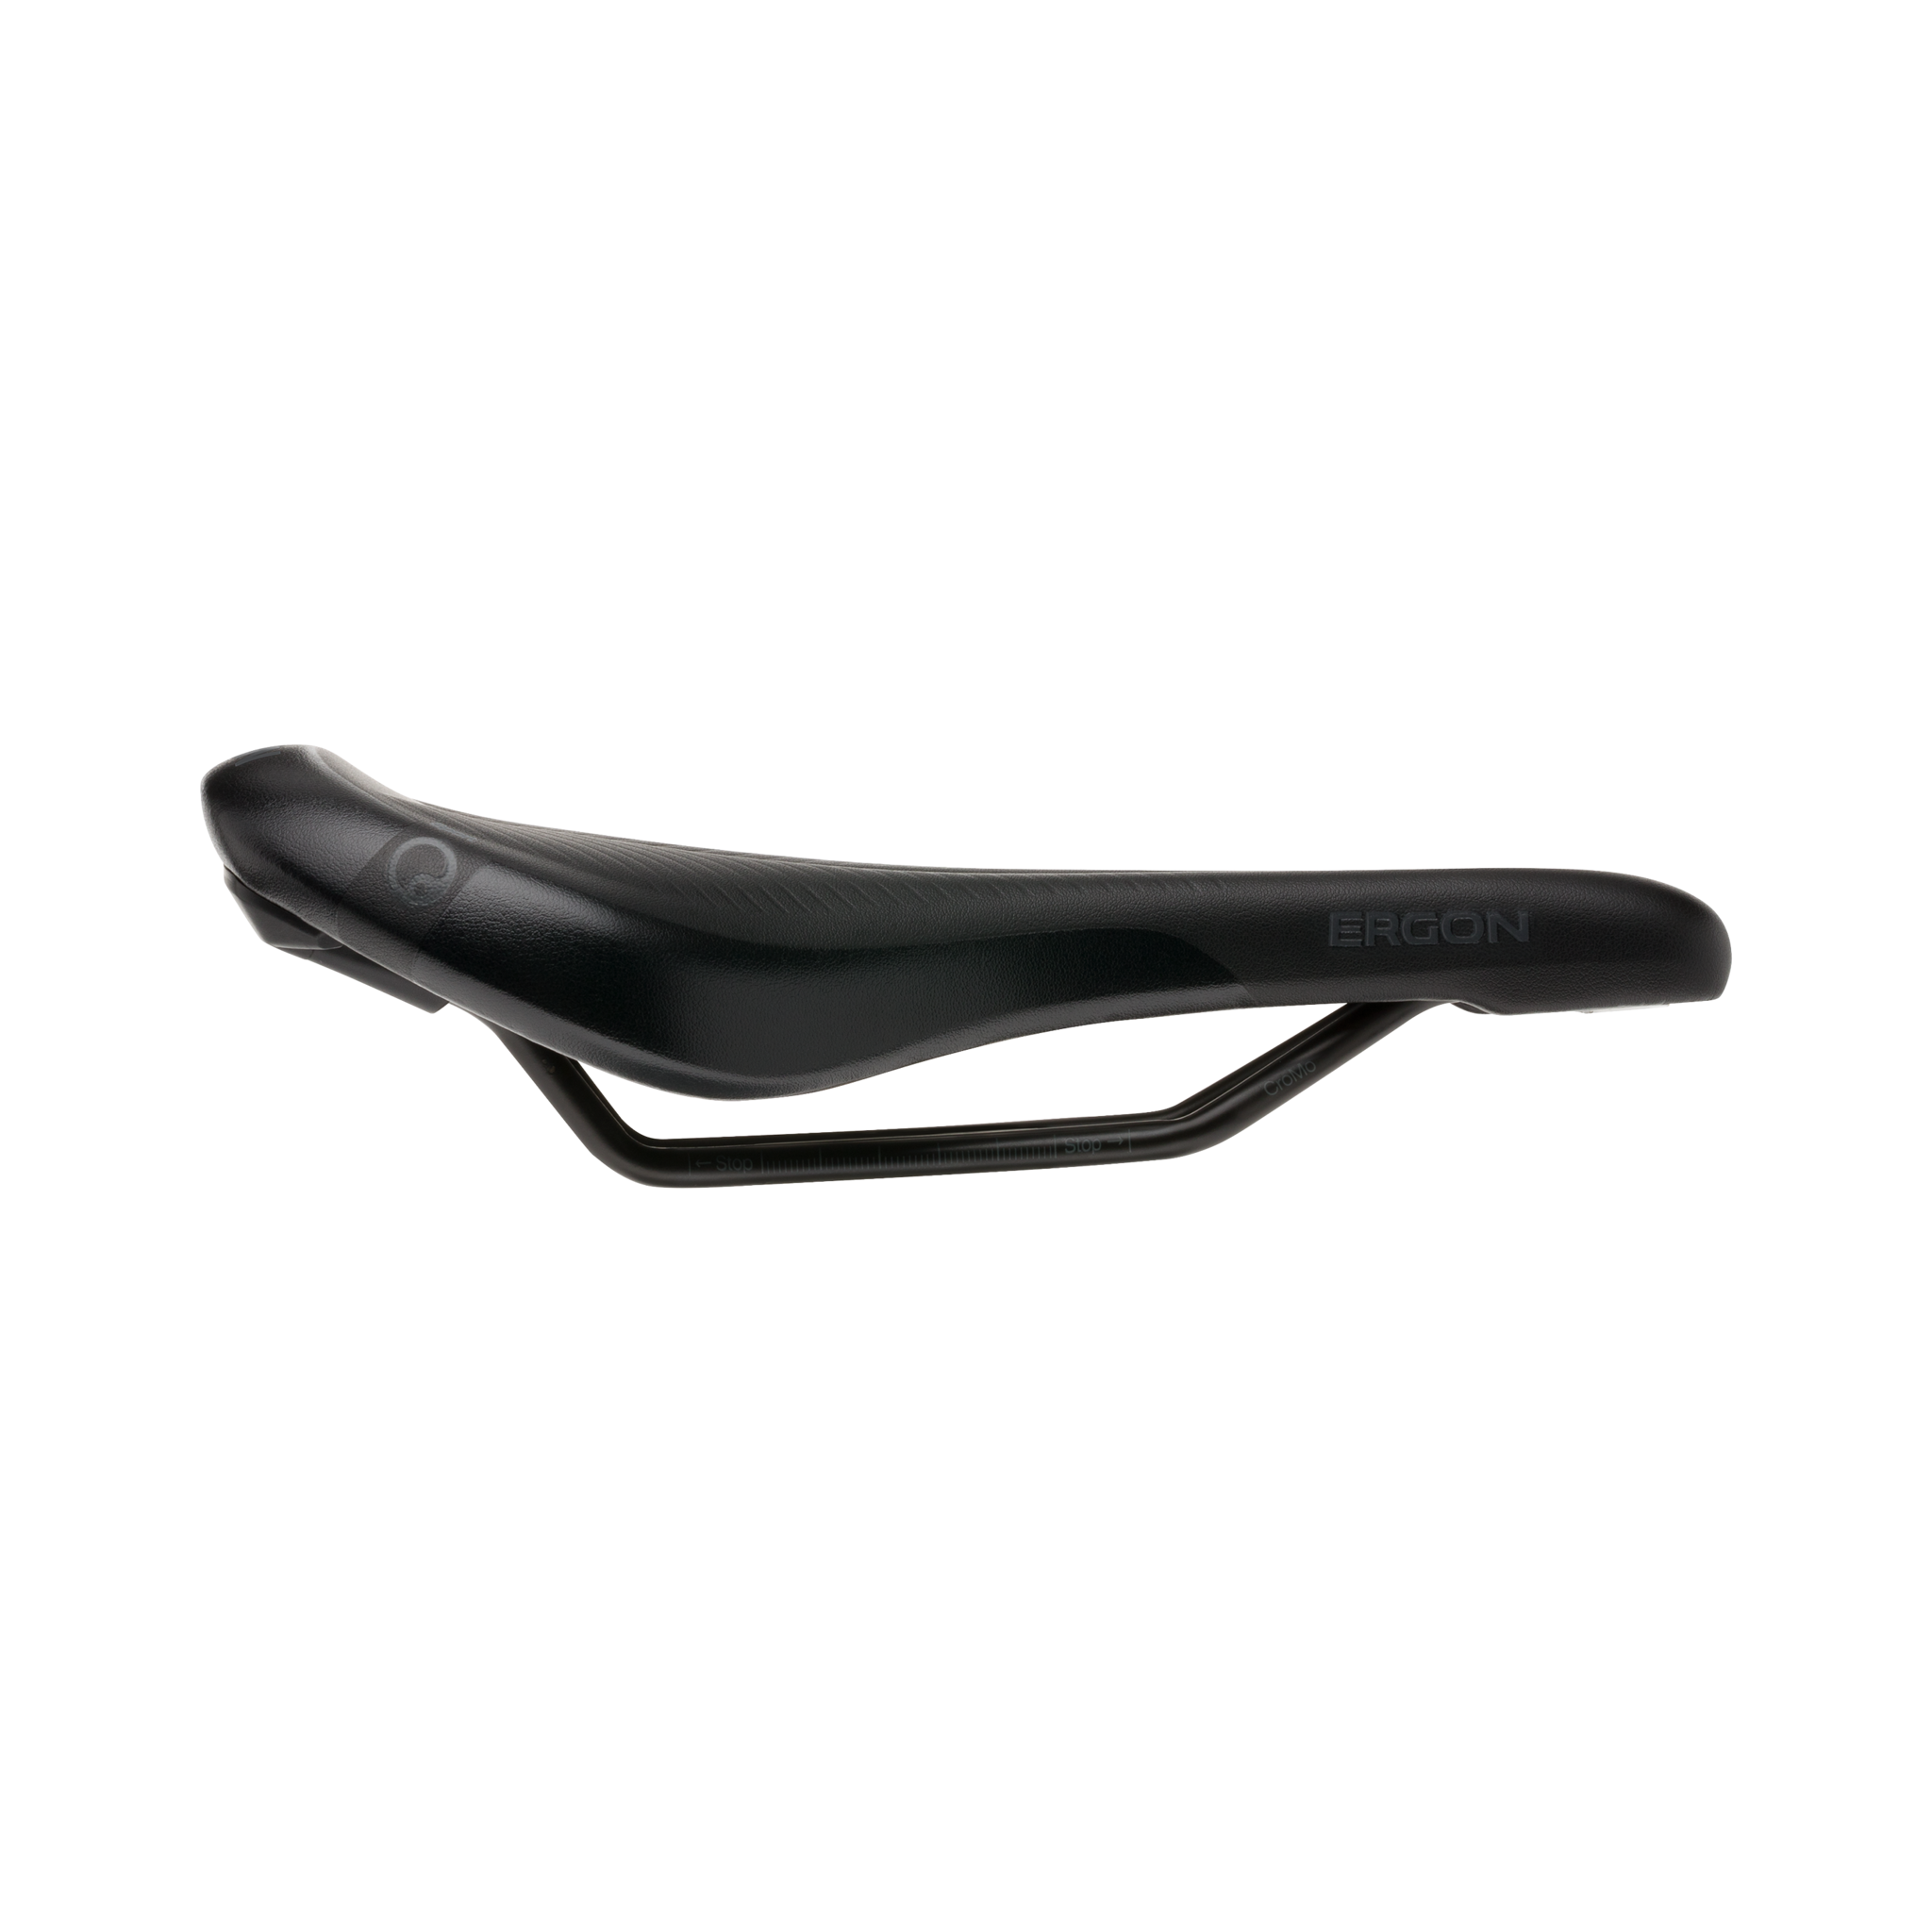 Ergon Ergon SM E Mountain Sport Saddle - Women's, Medium/Large